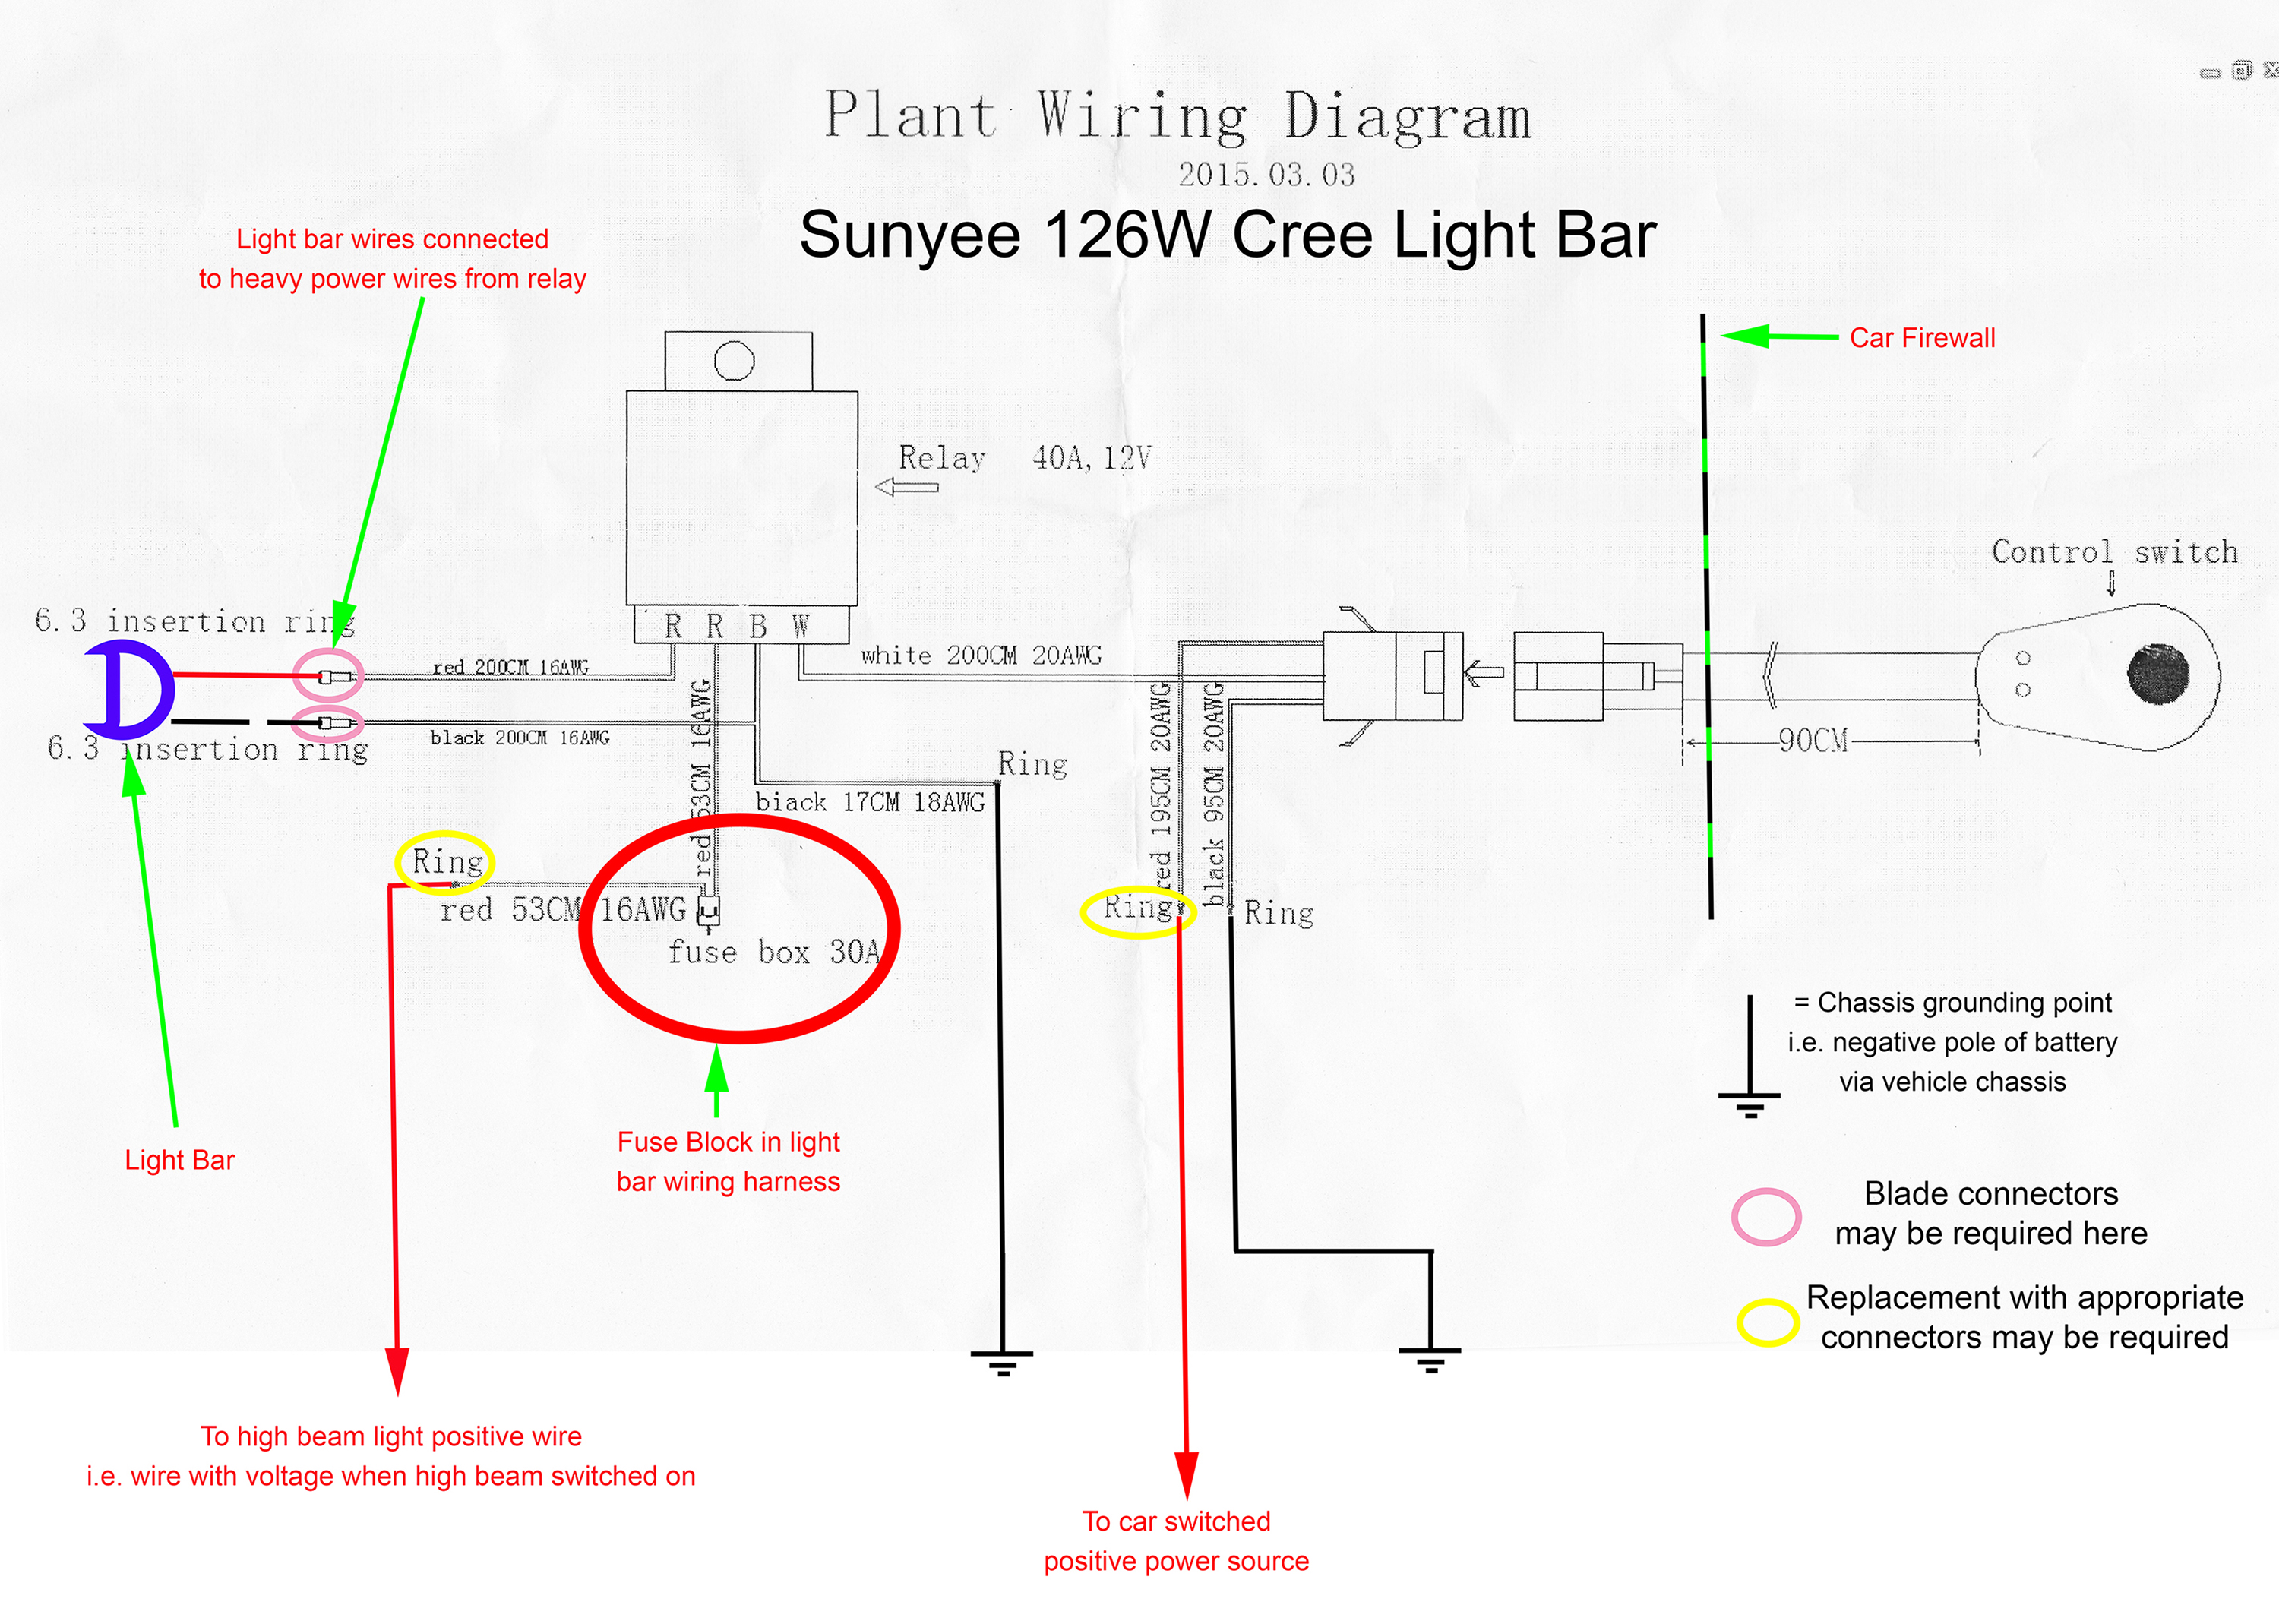 Sunyee au+126W+Light+Bar+wiring+diagram+Modified 2_small wiring diagram for cree led light bar readingrat net anzo wiring harness diagram at alyssarenee.co